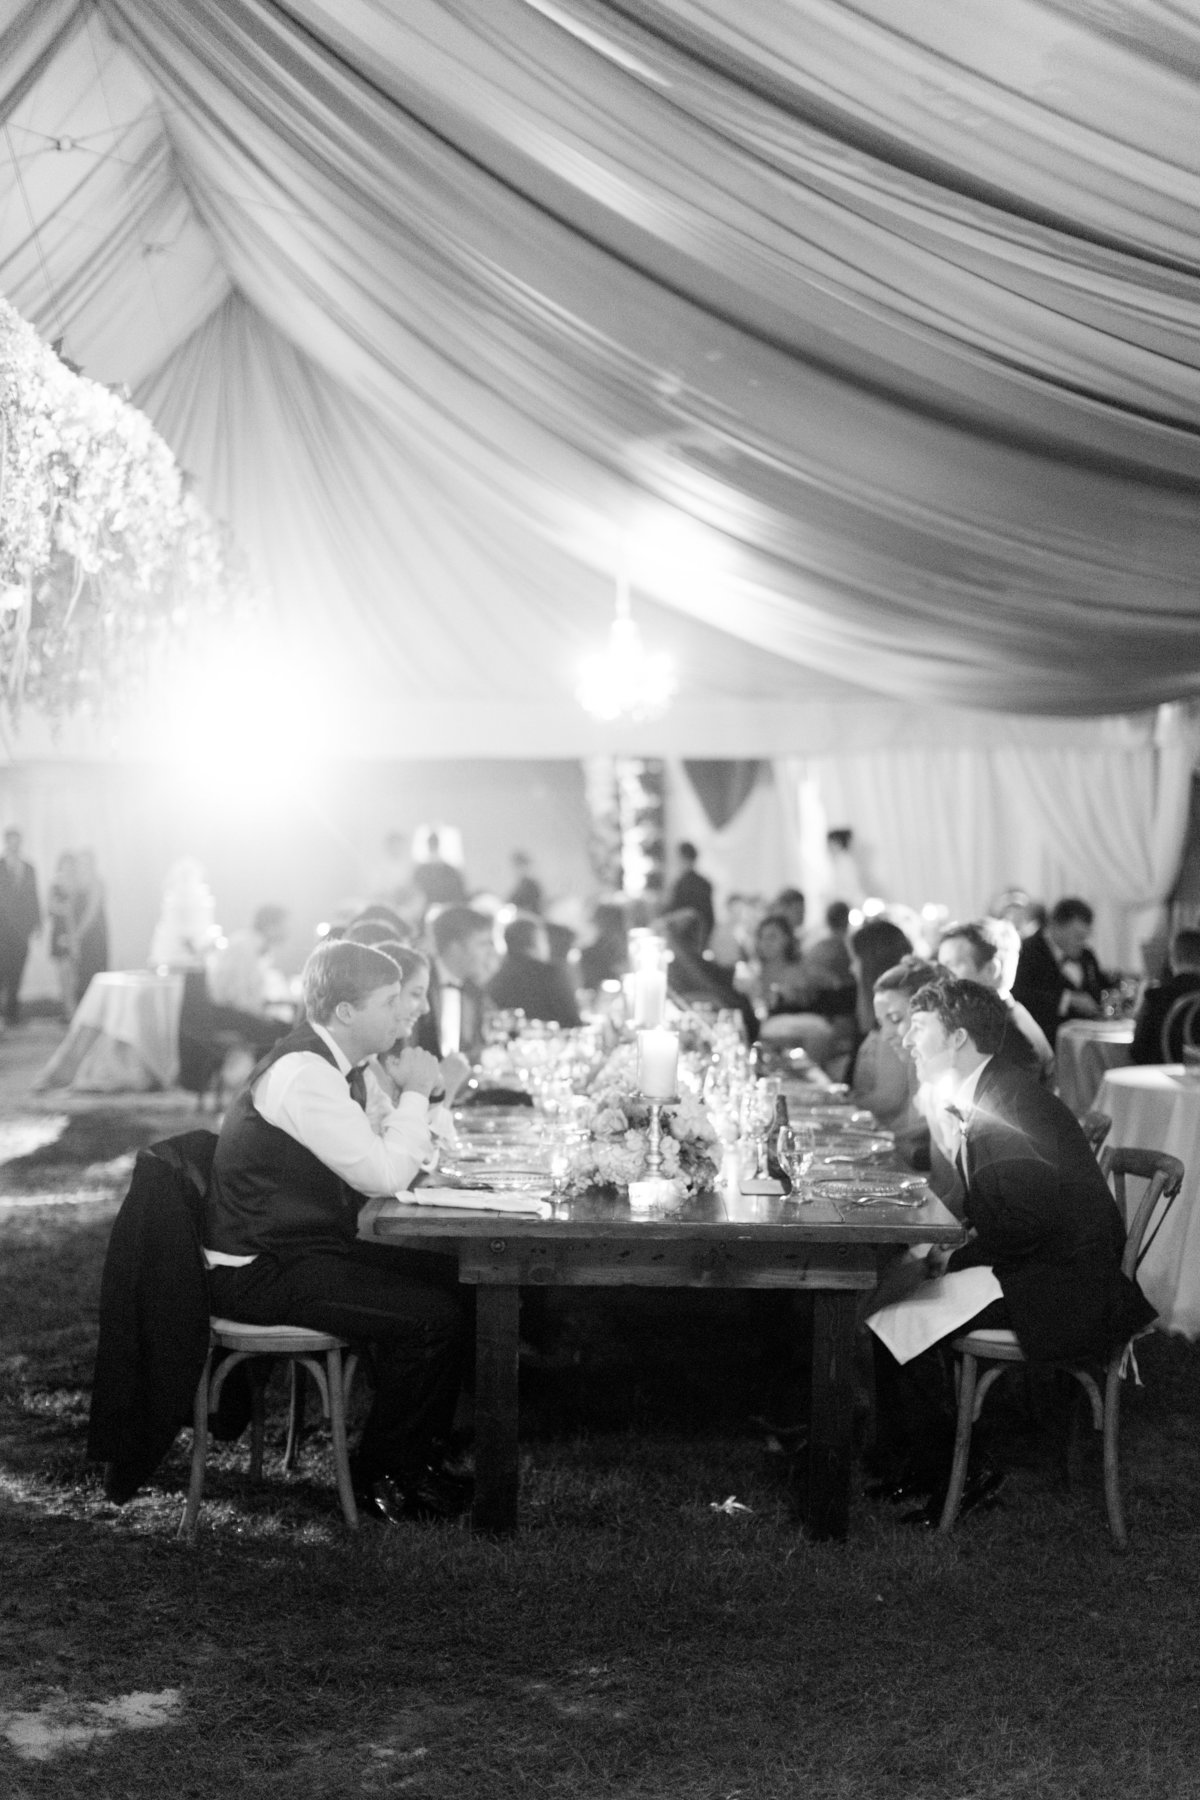 Windwood_Equestrian_Outdoor_Farm_Wedding_VenueErich_McVey_Photography99